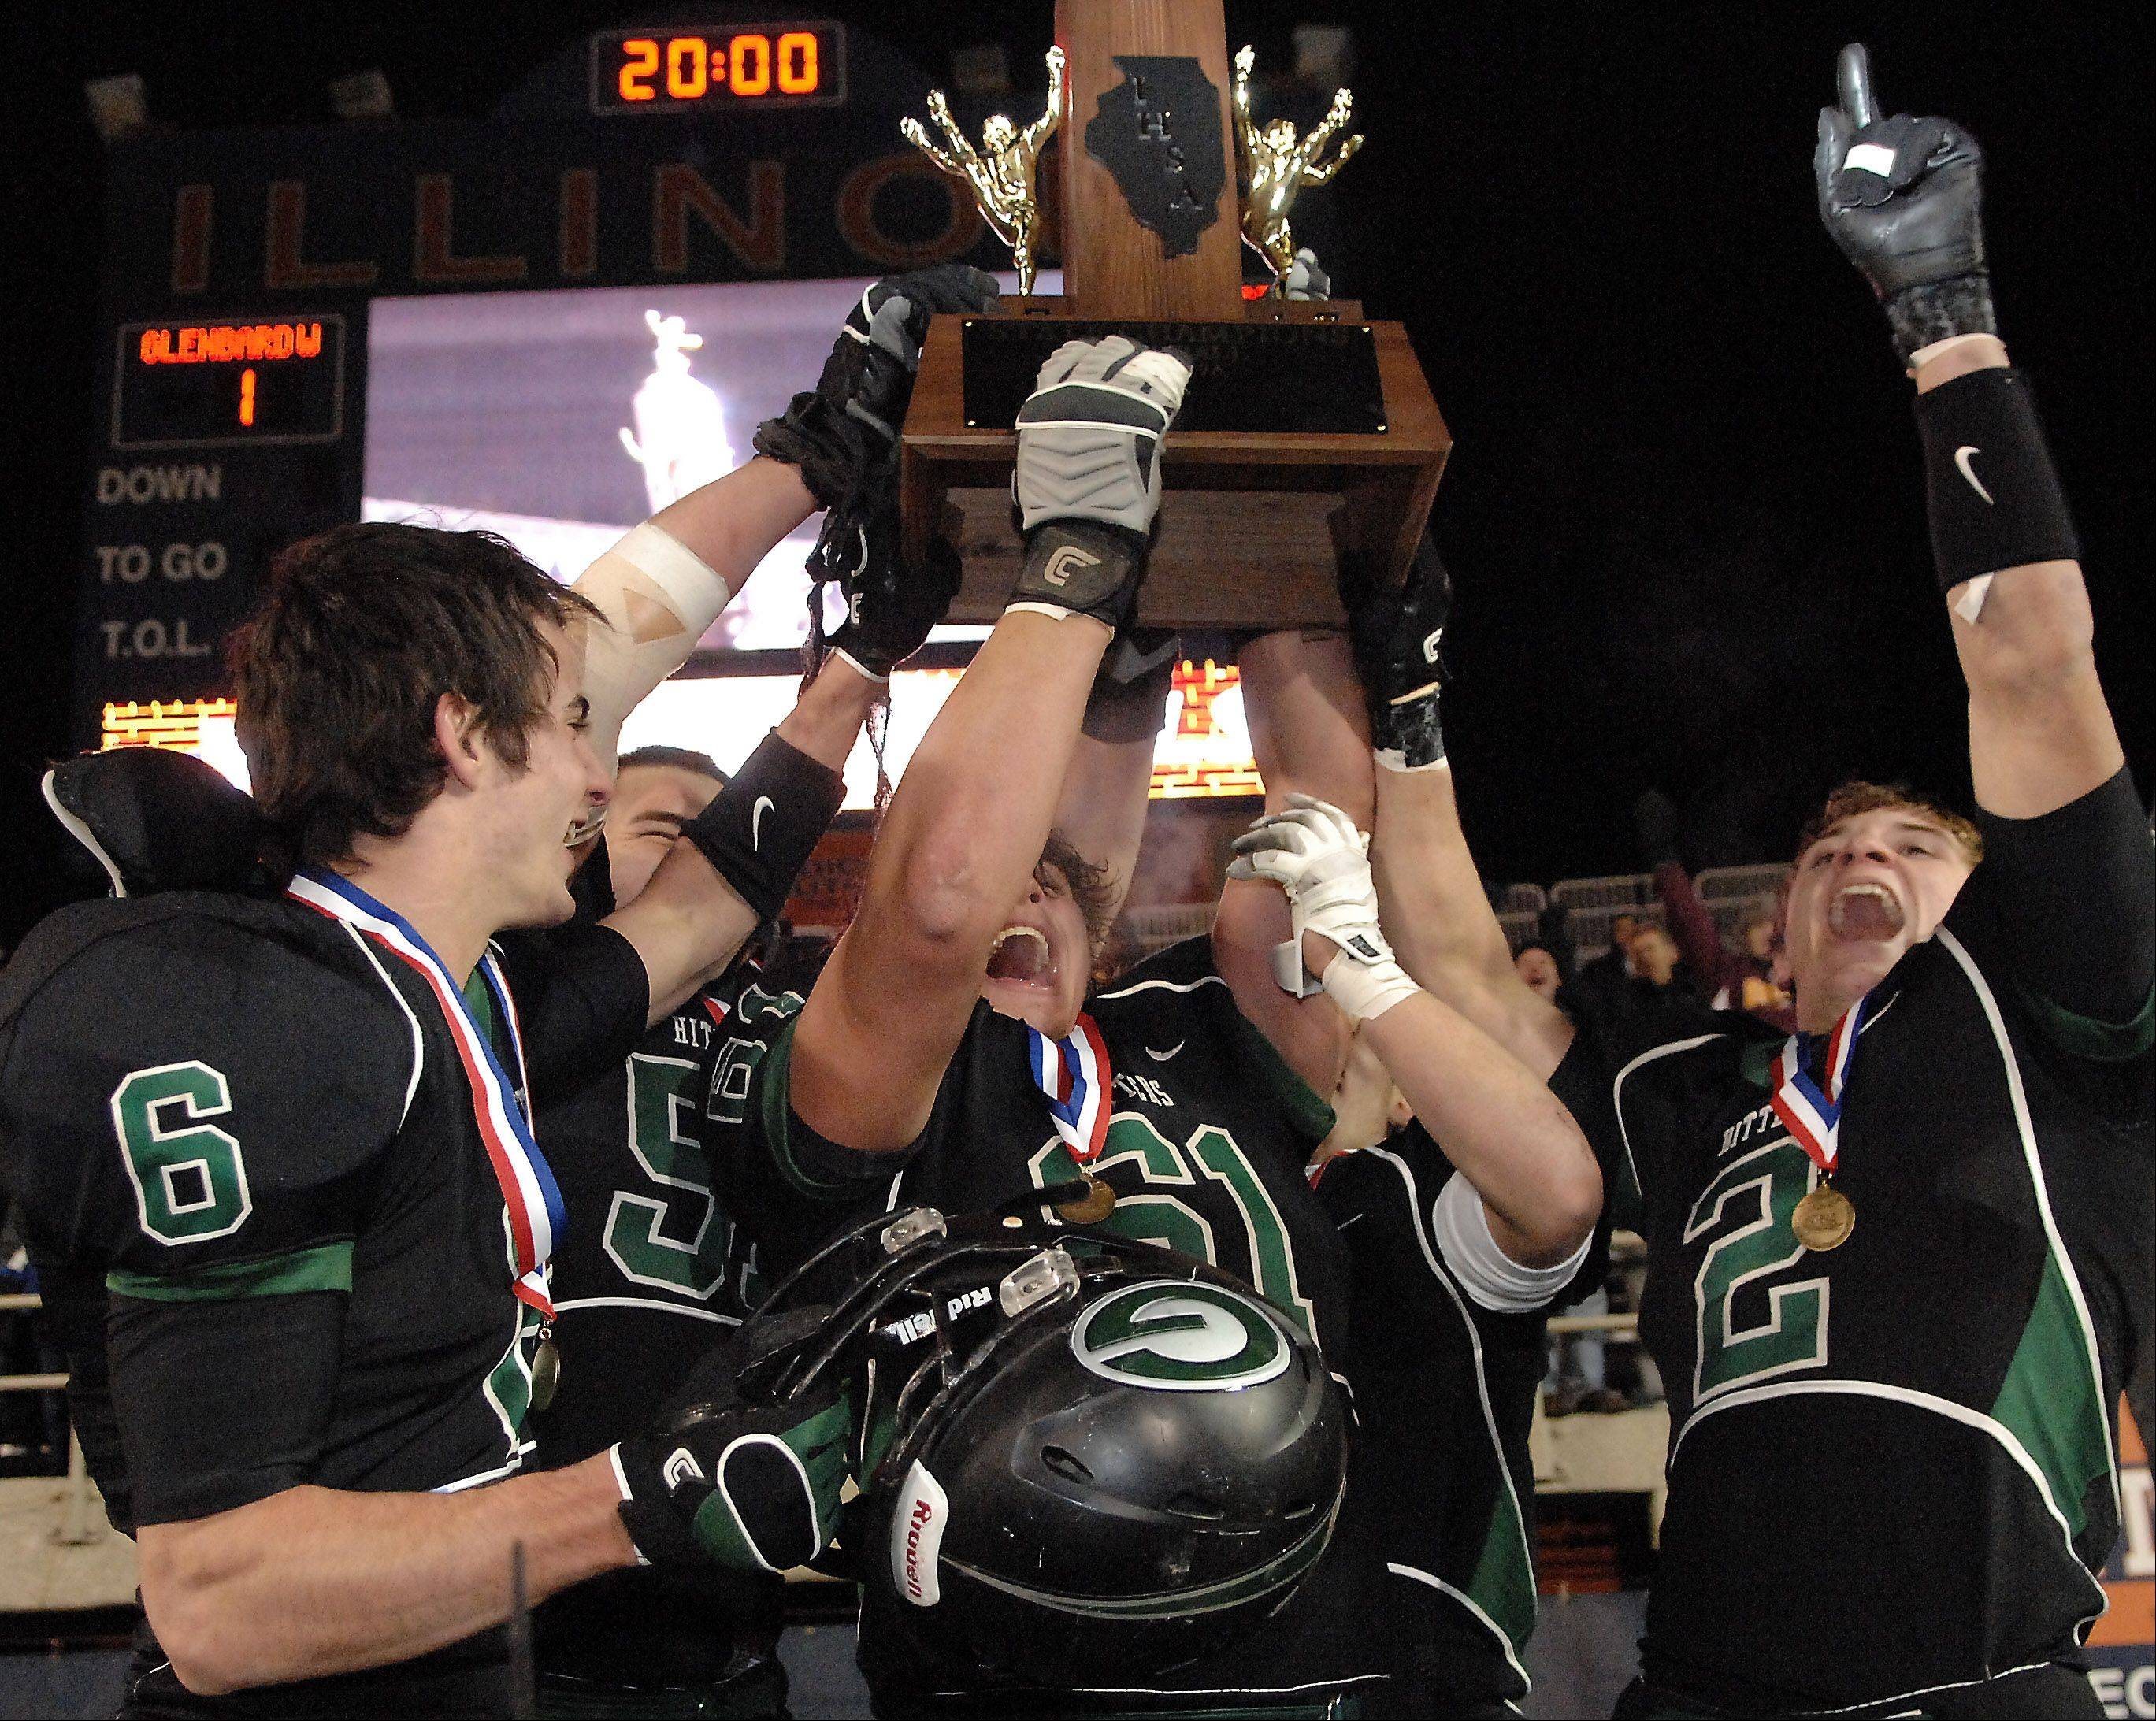 The Glenbard West captains hoist the championship trophy following their win over Lincoln-Way East during Saturday's Class 7A state title game at Memorial Stadium in Champaign.